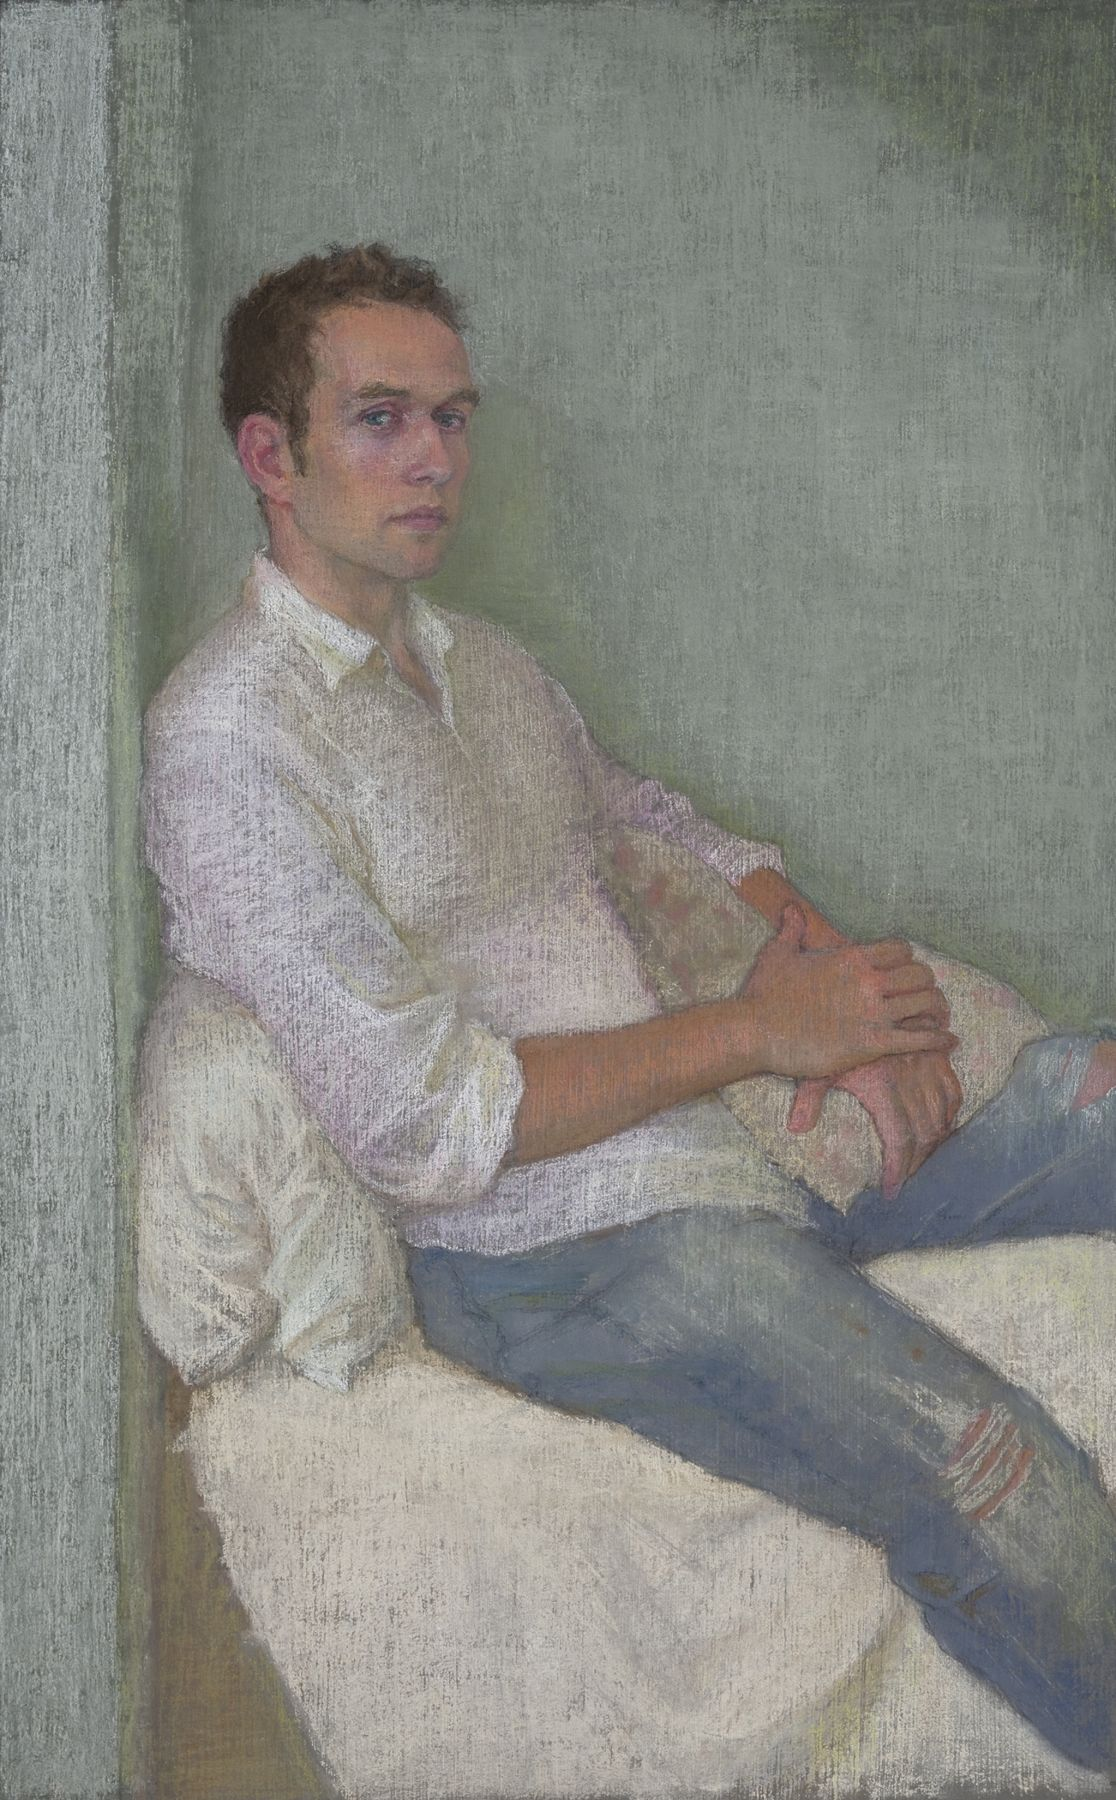 Ellen Eagle, Anastasio with Pillow, 2010, pastel on pumice board, 18 1/2 x 11 1/2 inches